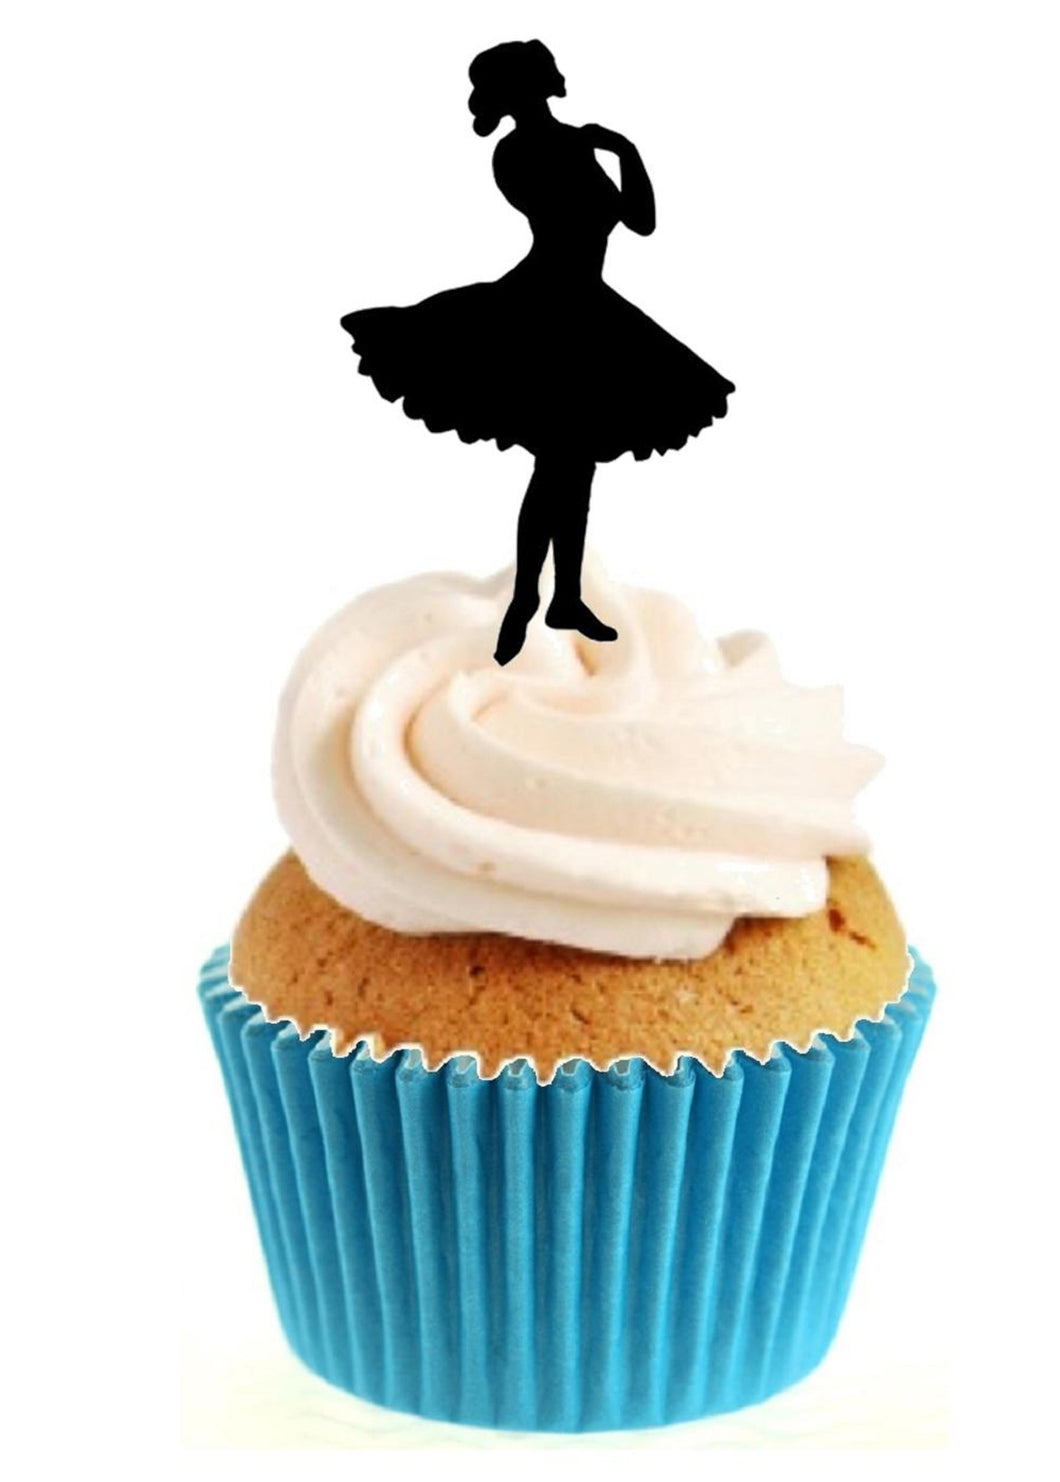 Ballerina Silhouette Stand Up Cake Toppers (12 pack)  Pack contains 12 images printed onto premium wafer card